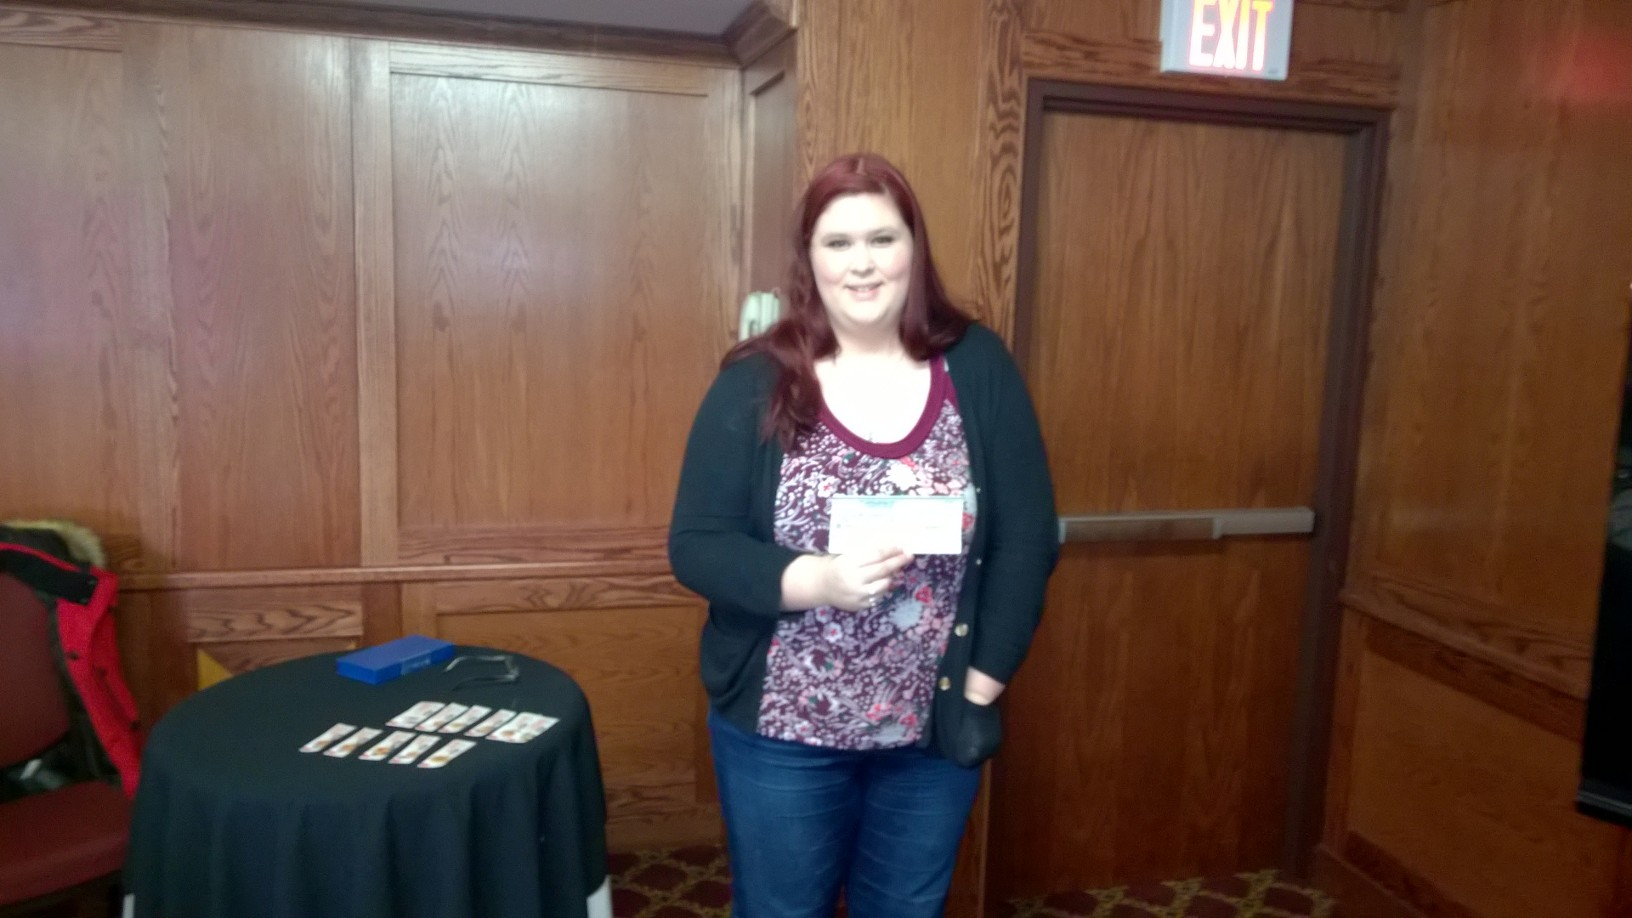 Nicole Hart. 1 of the winners of our 50:50 draw December 27, 2016 class.